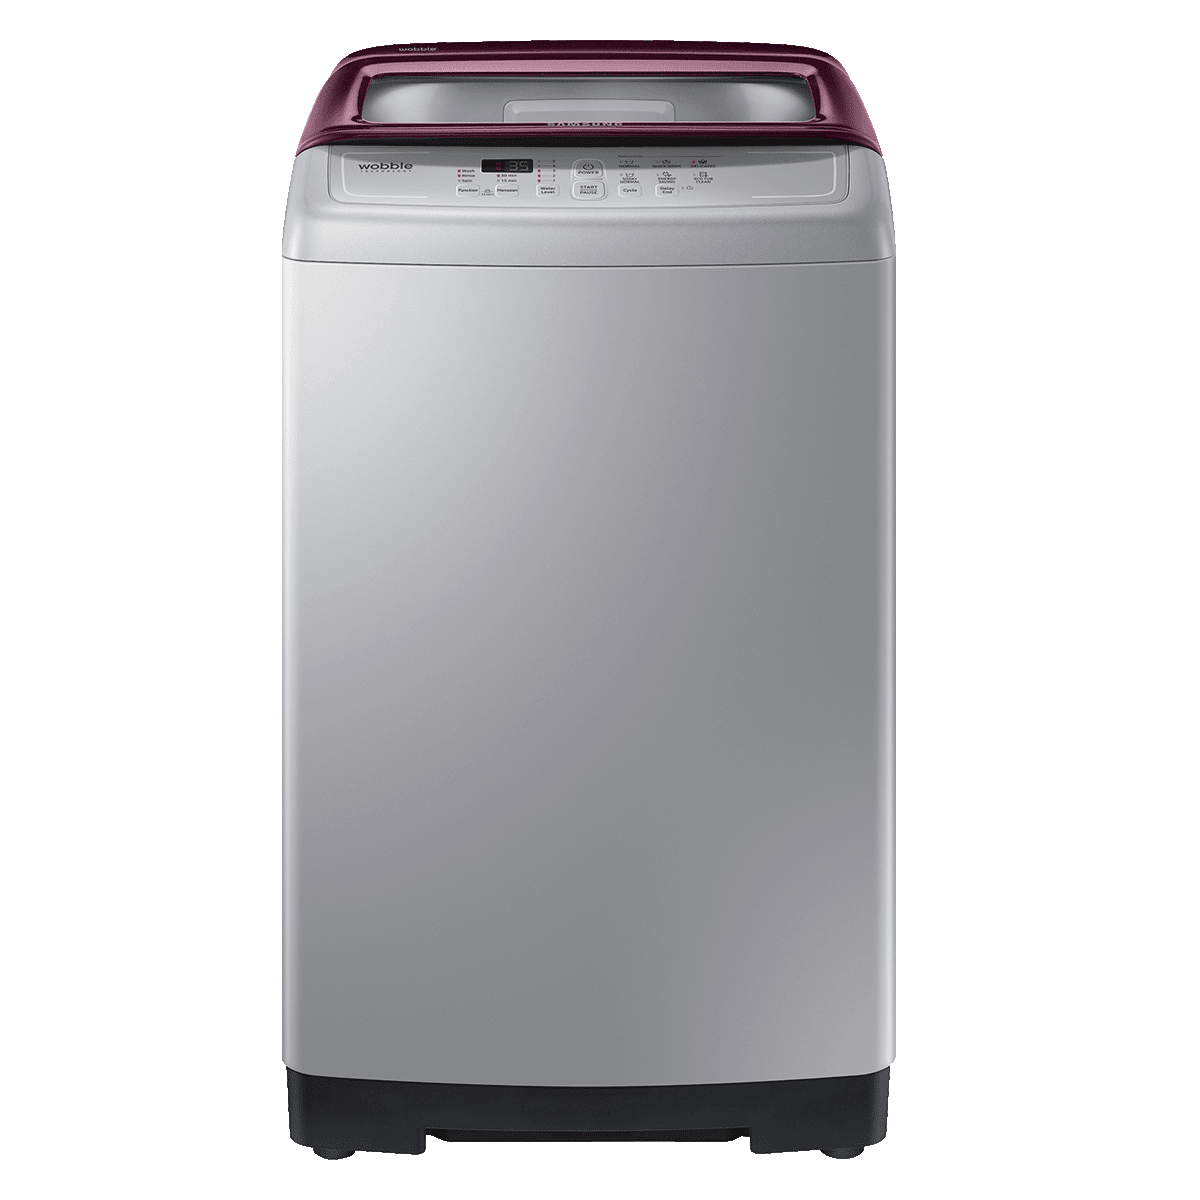 Samsung 6.5 Kg Fully Automatic Top Load Washing Machine (Magic Filter, WA65A4022FS/TL, Imperial Silver)